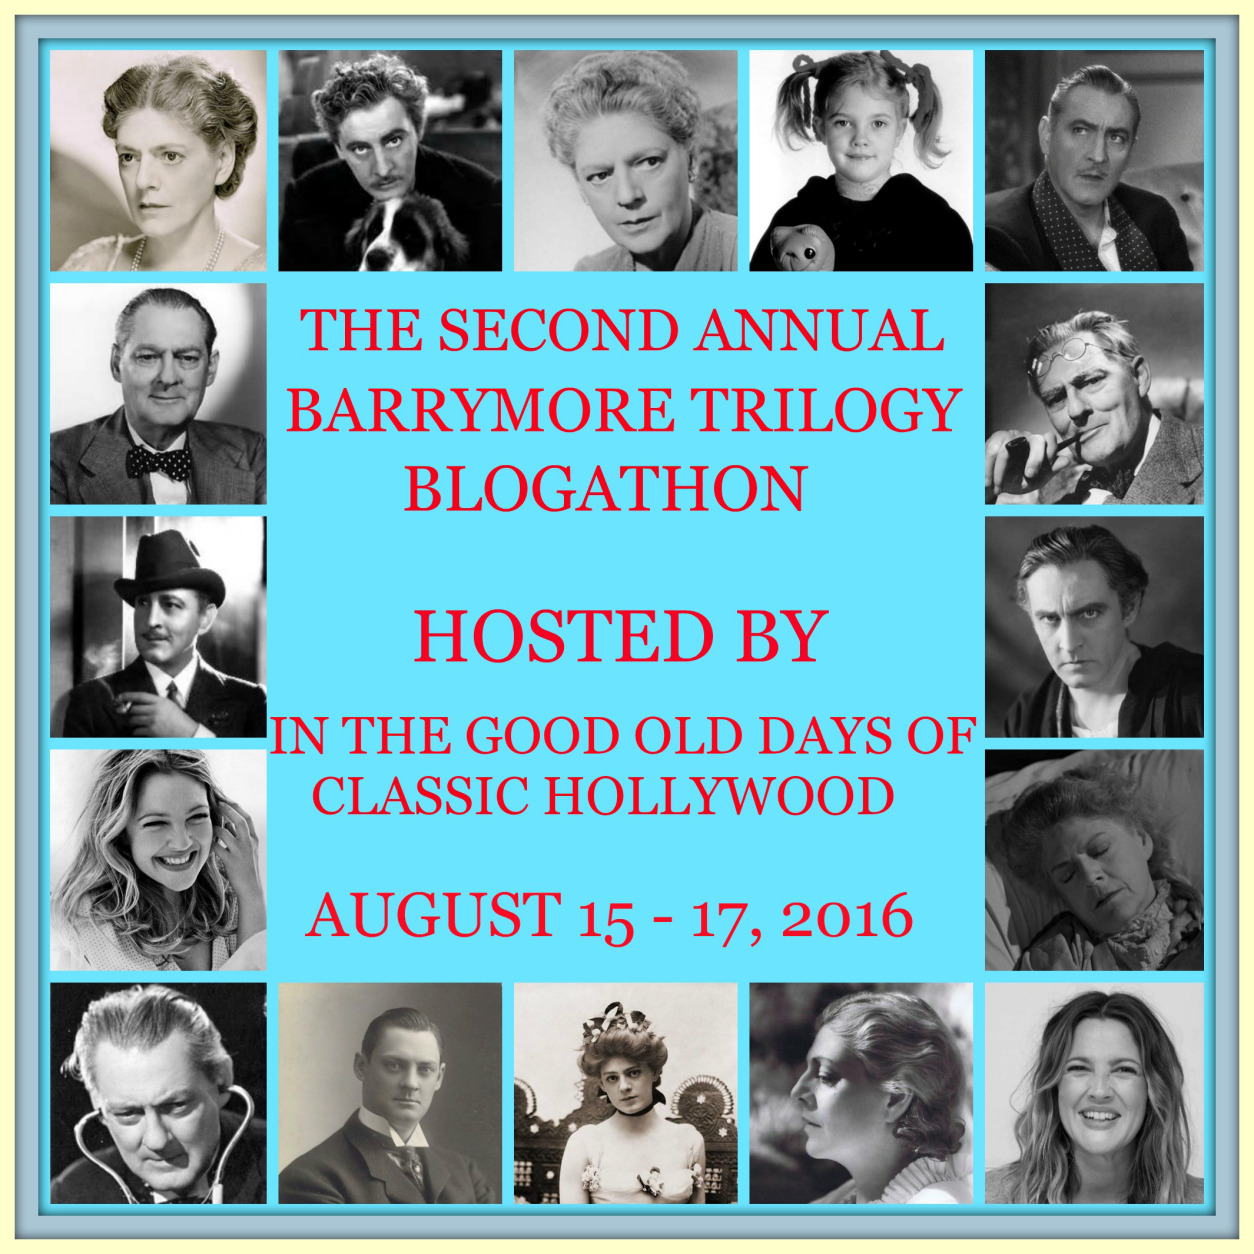 Barrymore Trilogy Blogathon